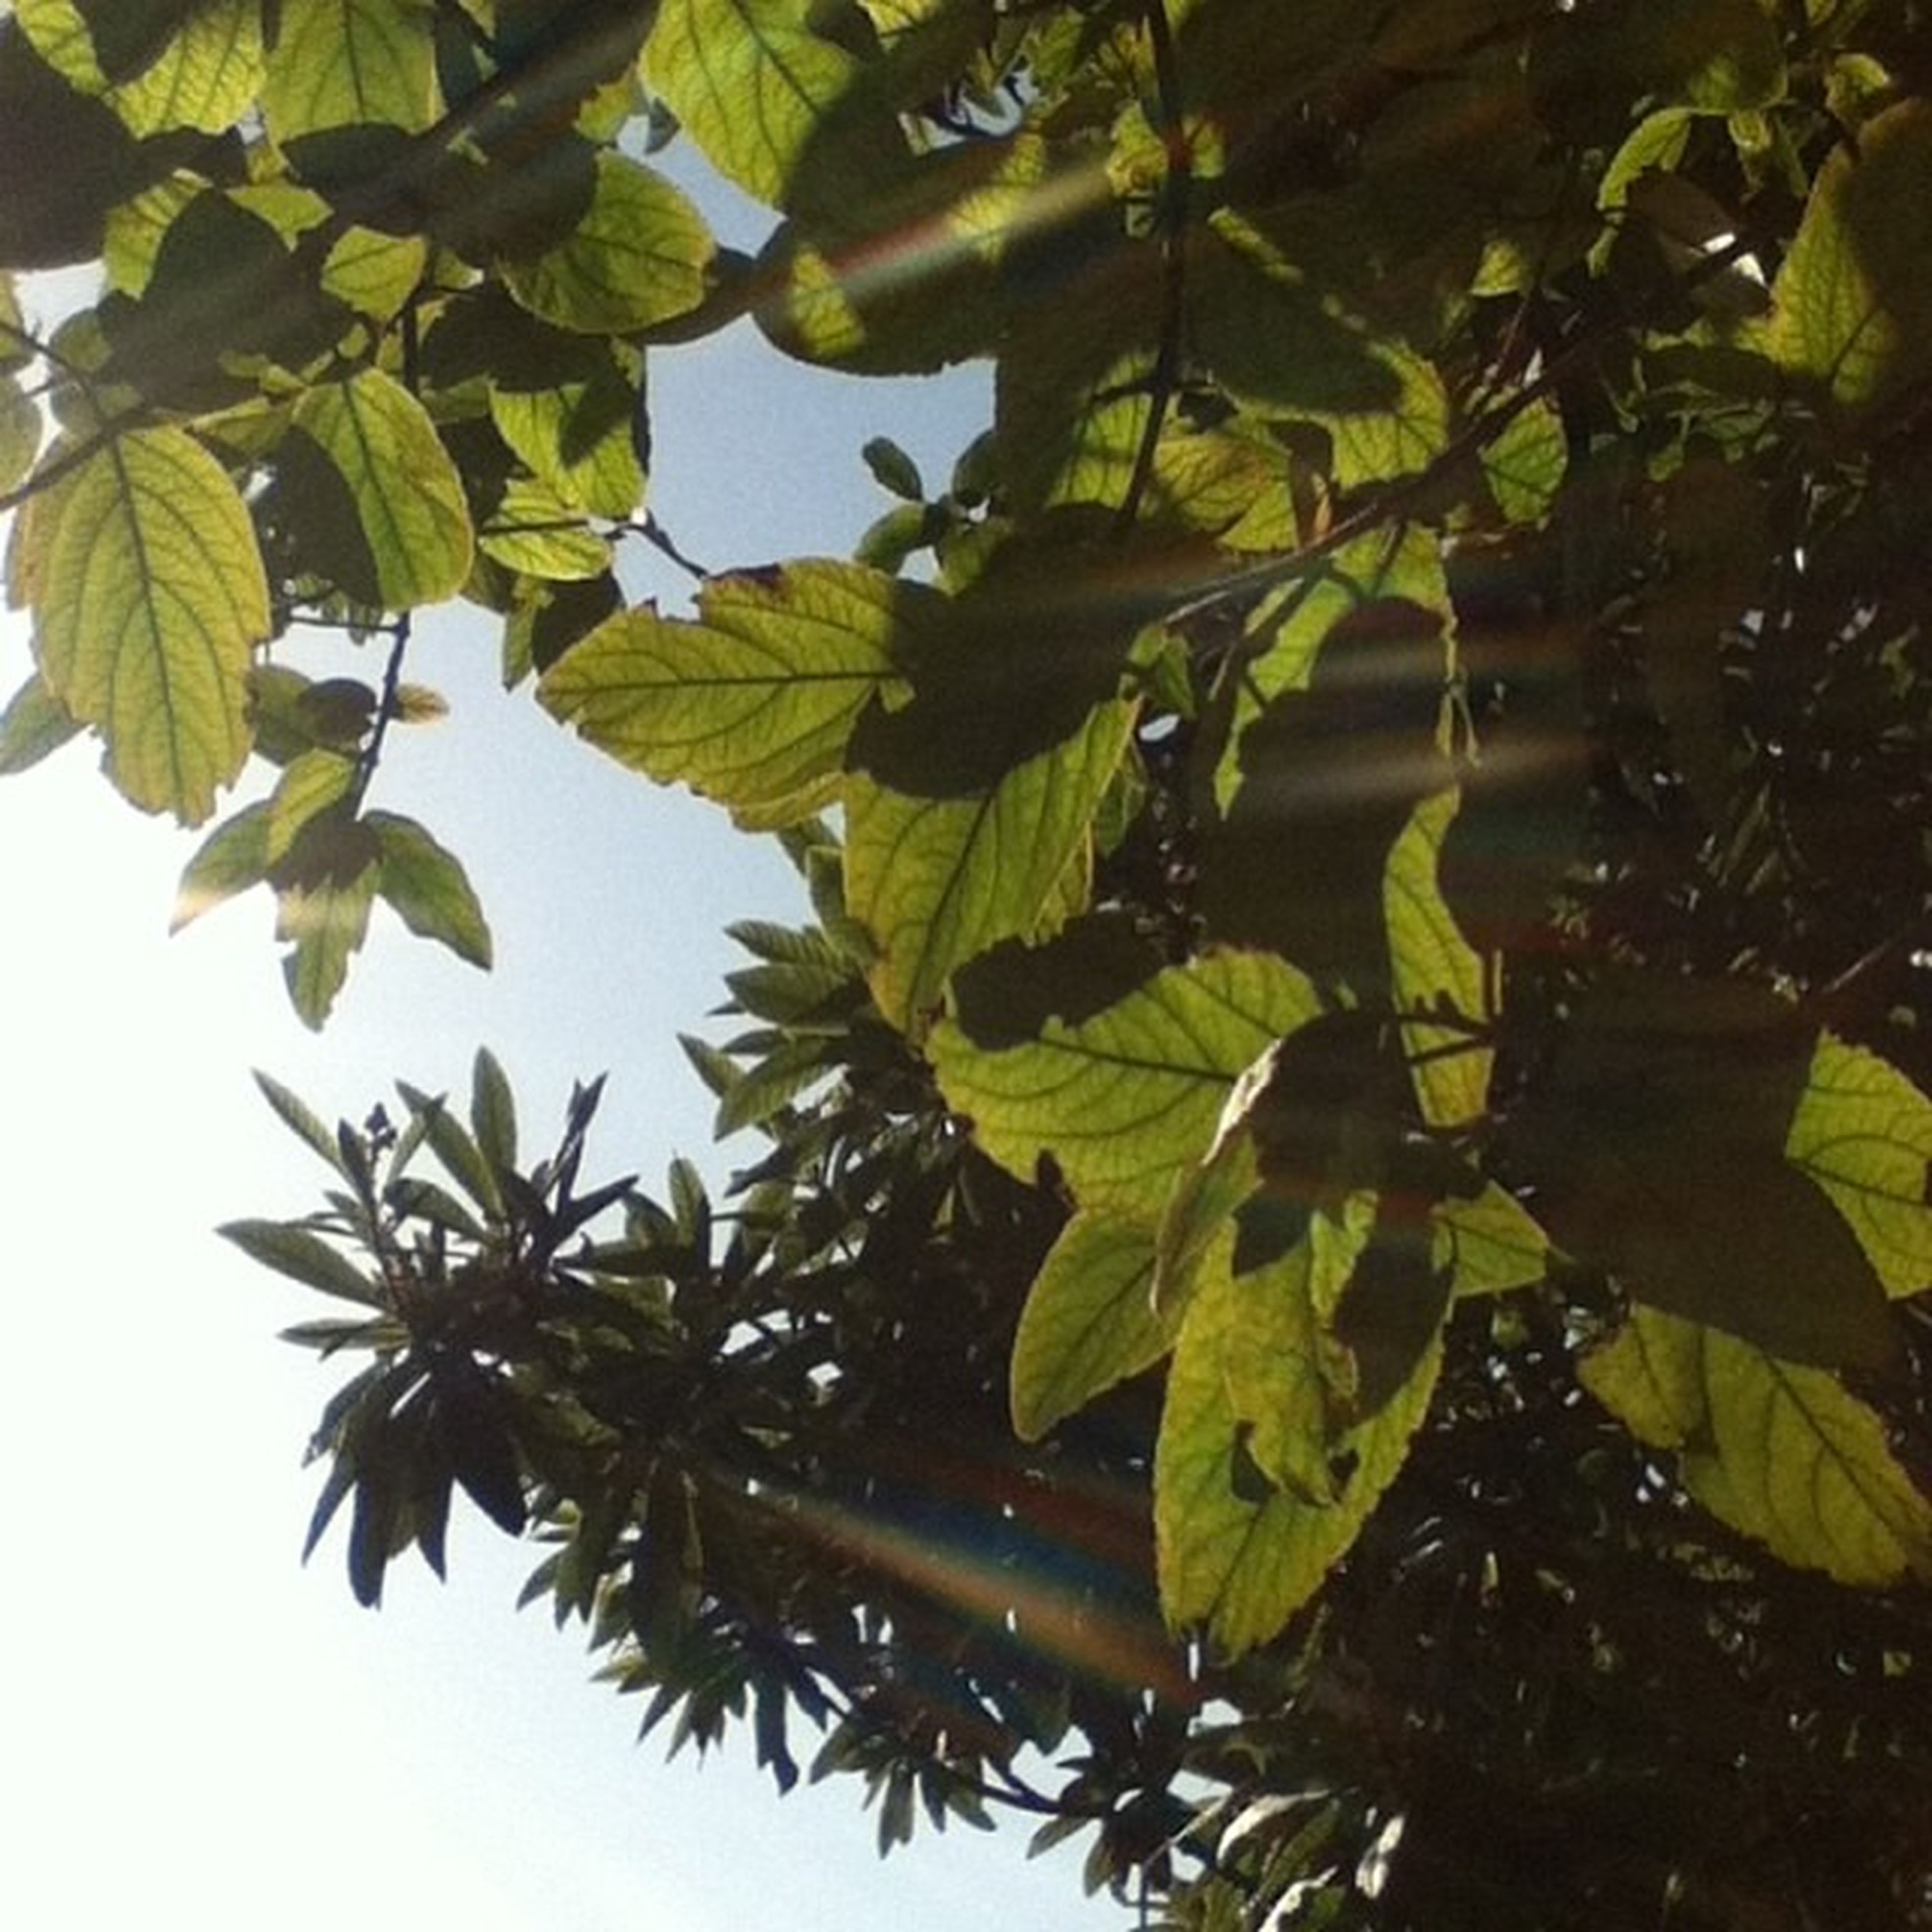 leaf, tree, low angle view, green color, growth, branch, nature, leaves, clear sky, close-up, day, tranquility, sunlight, outdoors, sky, no people, plant, beauty in nature, focus on foreground, green